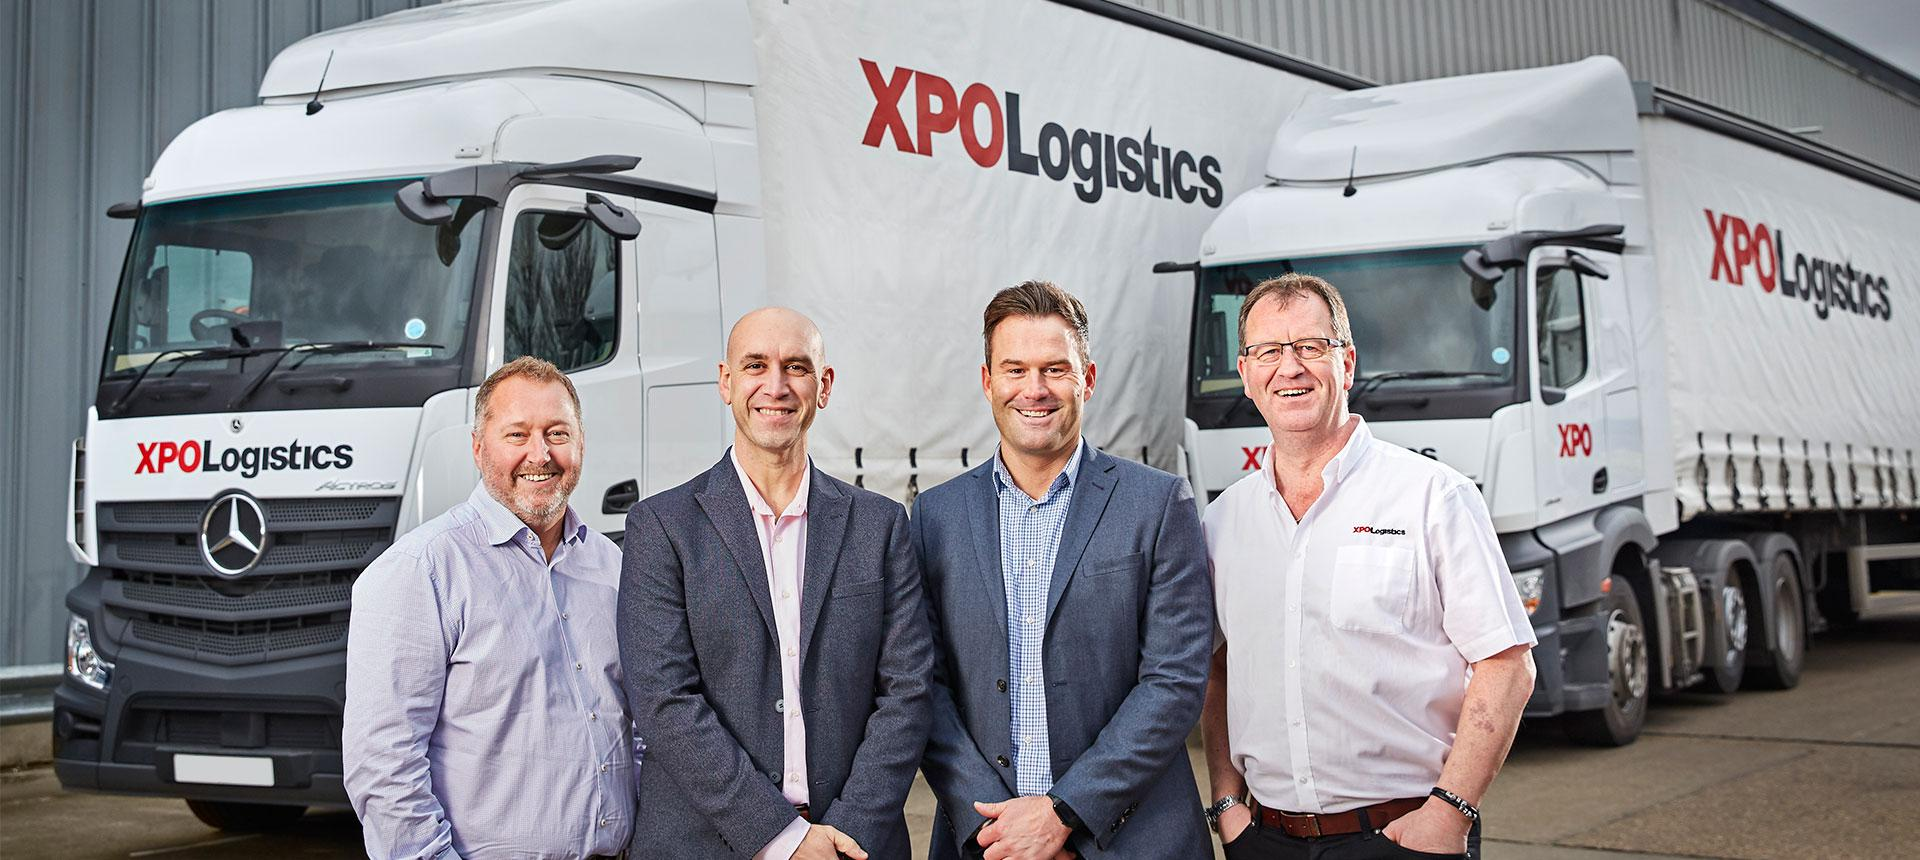 XPO and Mercedes-Benz leadership pose together